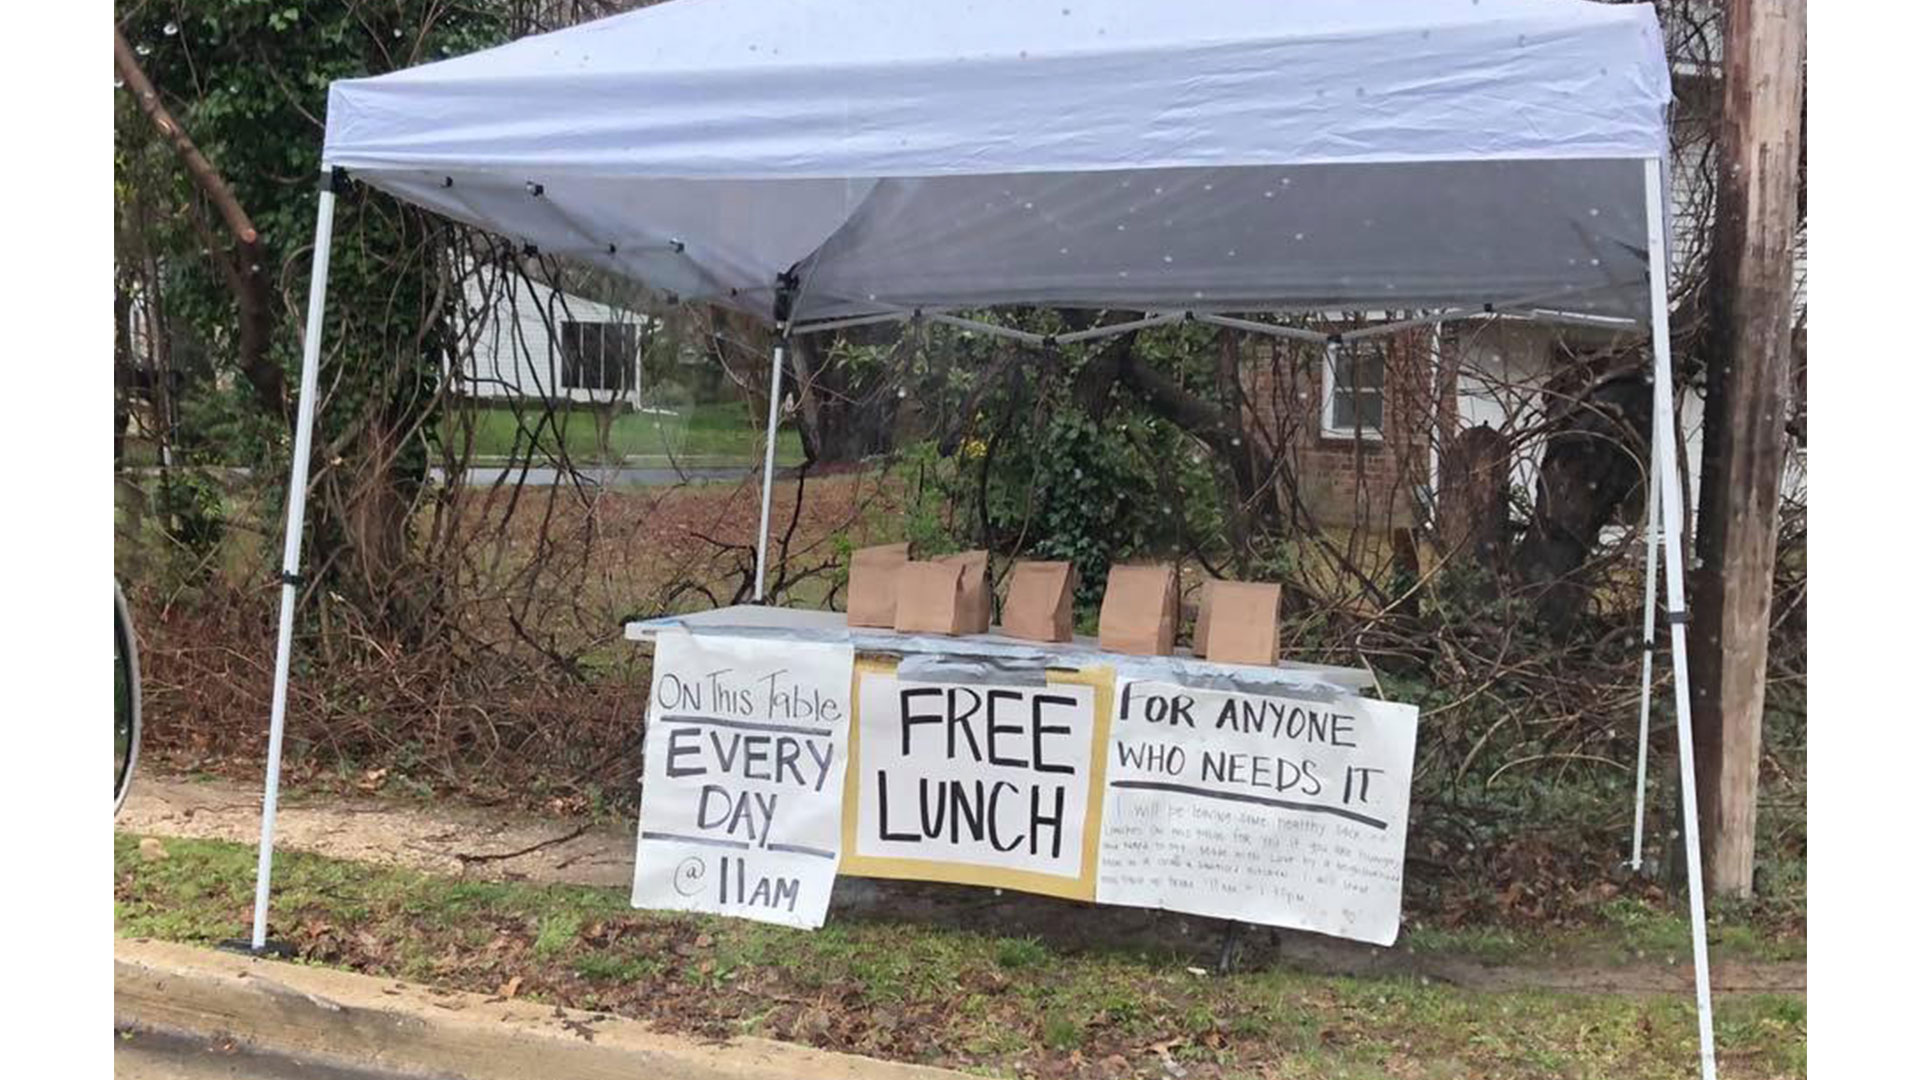 """A Maryland Mystery Mom is Leaving Free Lunches out """"for Anyone Who Needs It"""""""